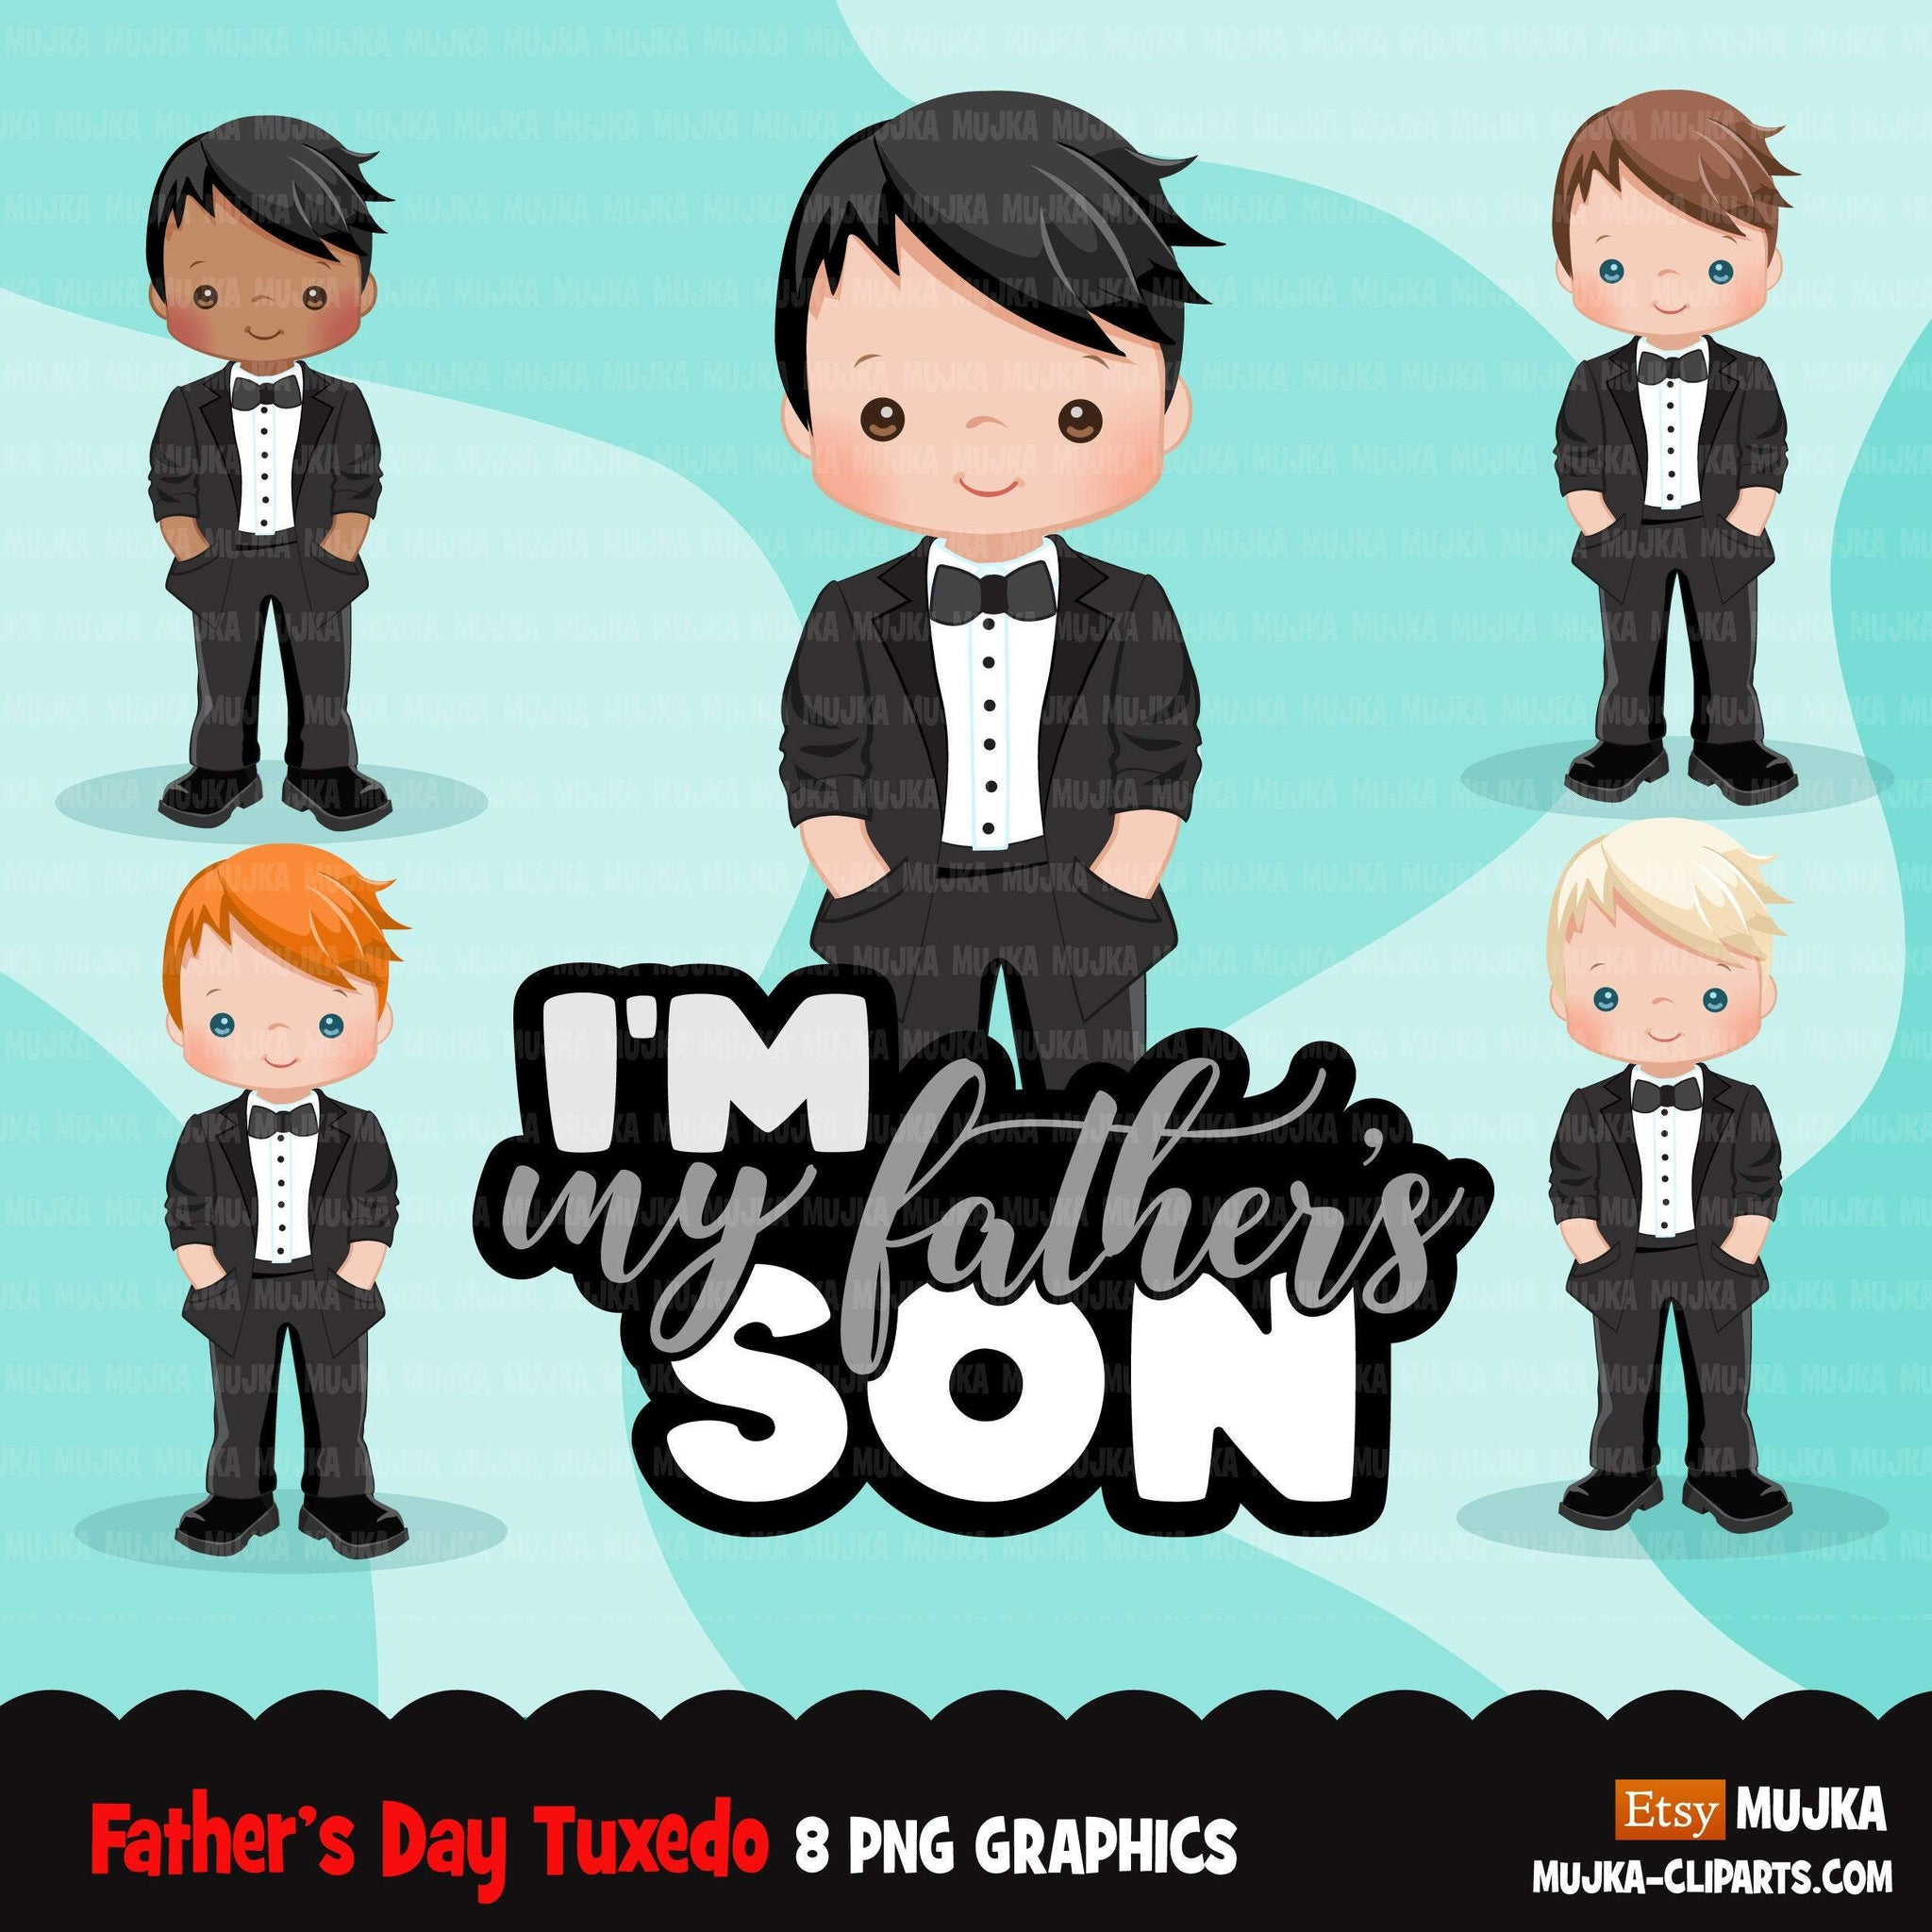 Father's Day clipart, boy with tuxedo, I am my father's son quote, dad graphics, commercial use PNG clip art